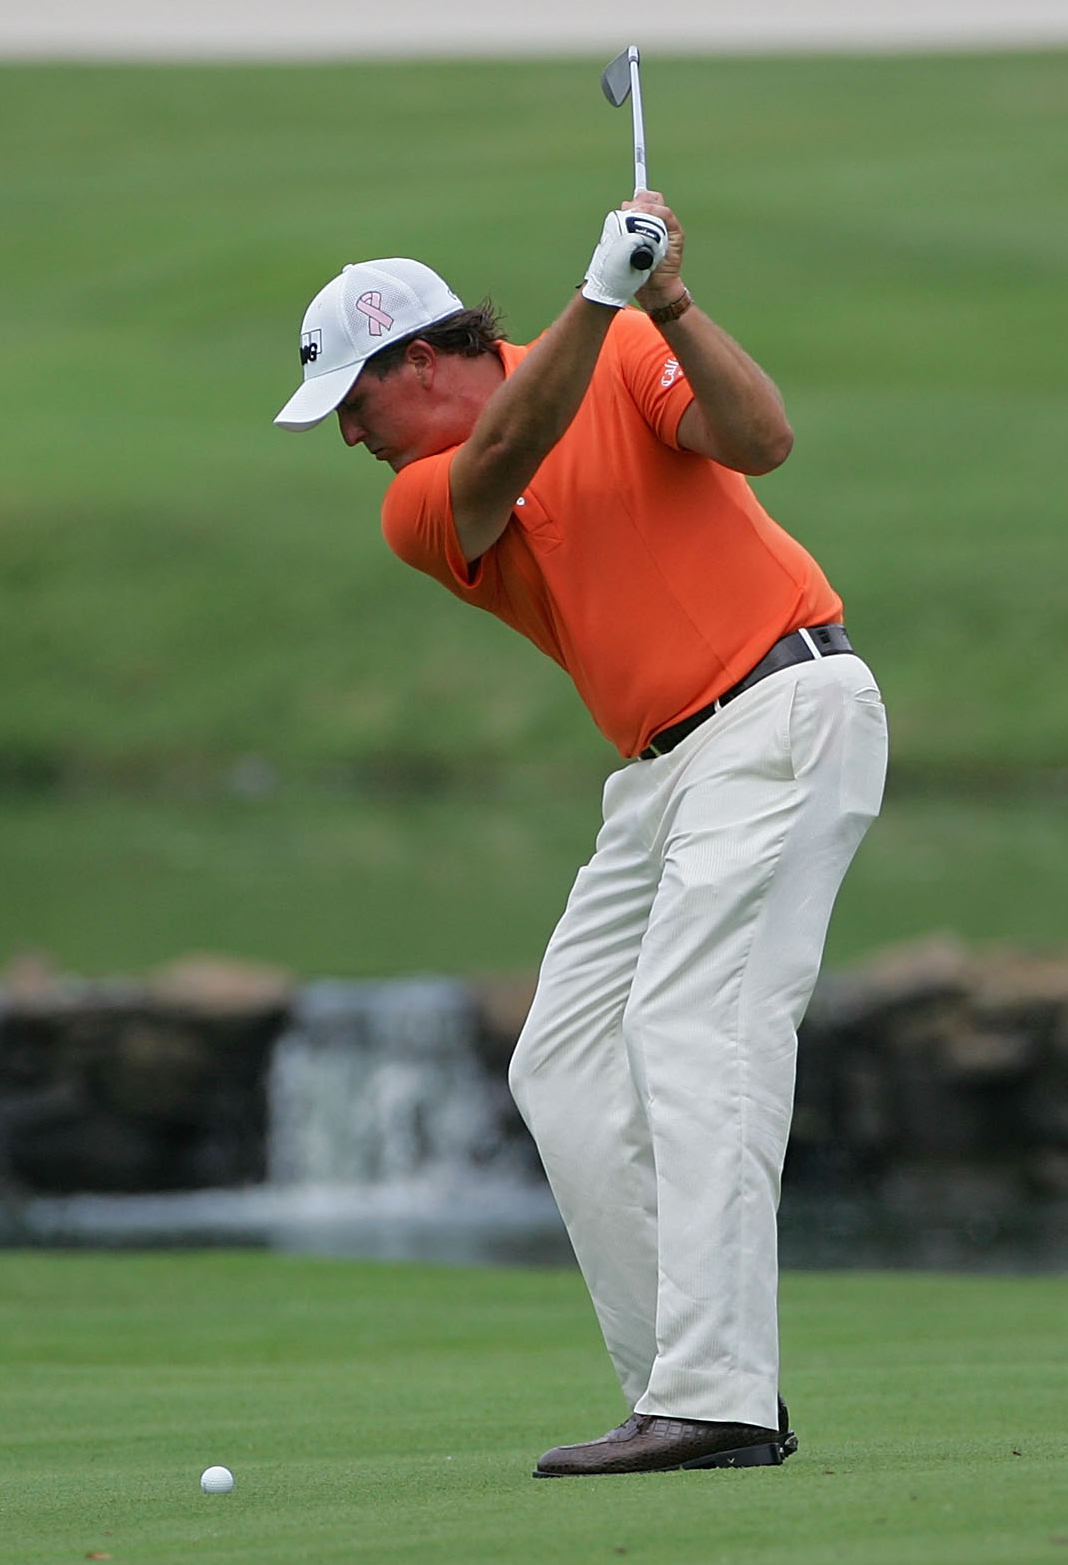 """The star this week is Phil Mickelson,"" said John Senden, who shot a 66."